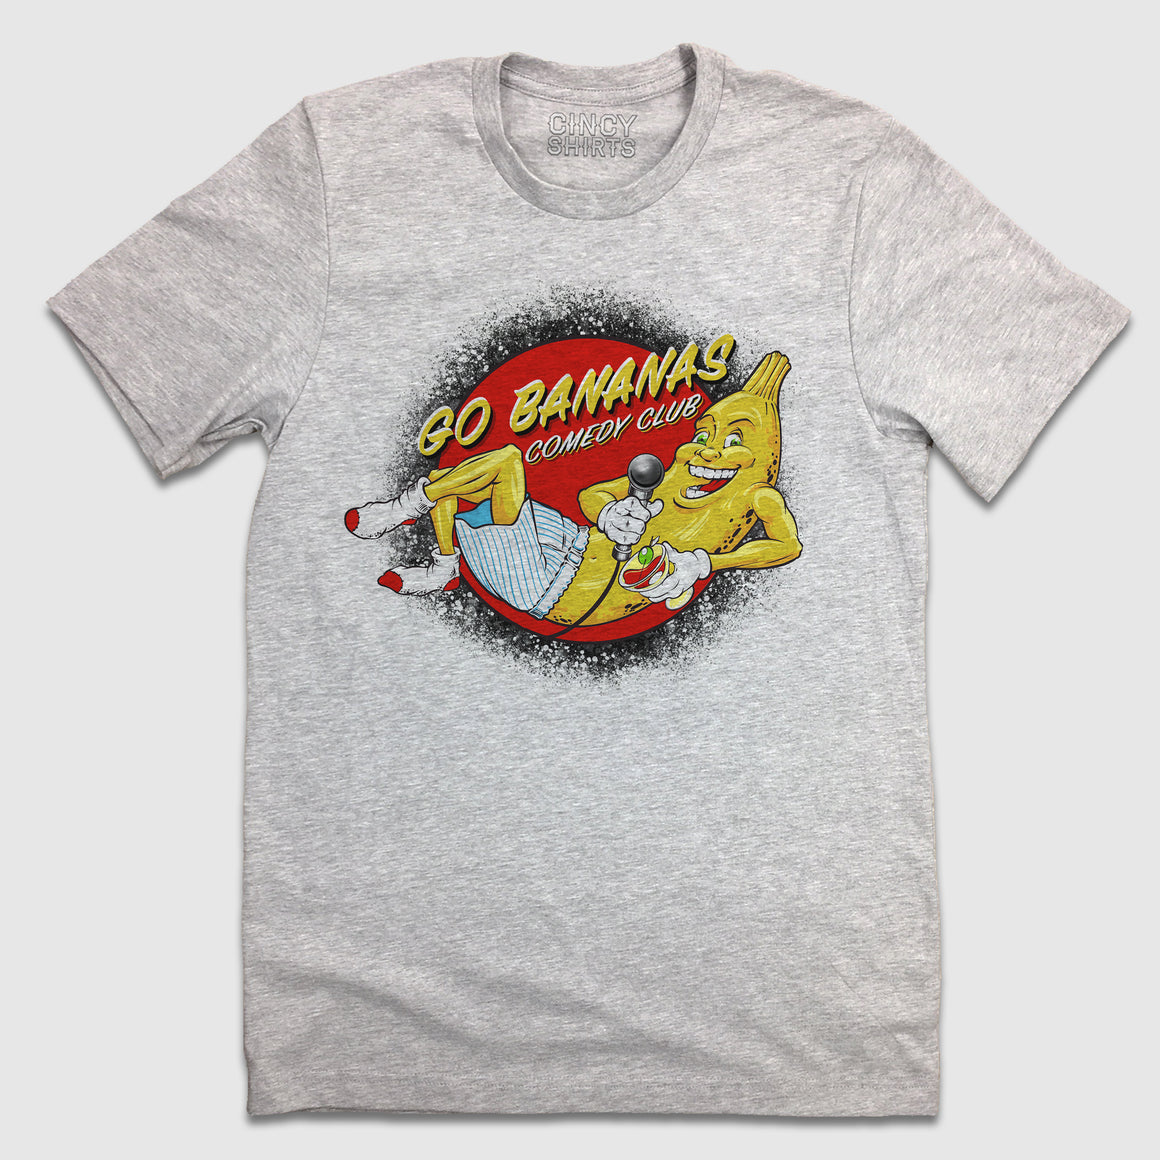 Go Bananas Comedy Club Logo T-shirt Cincinnati